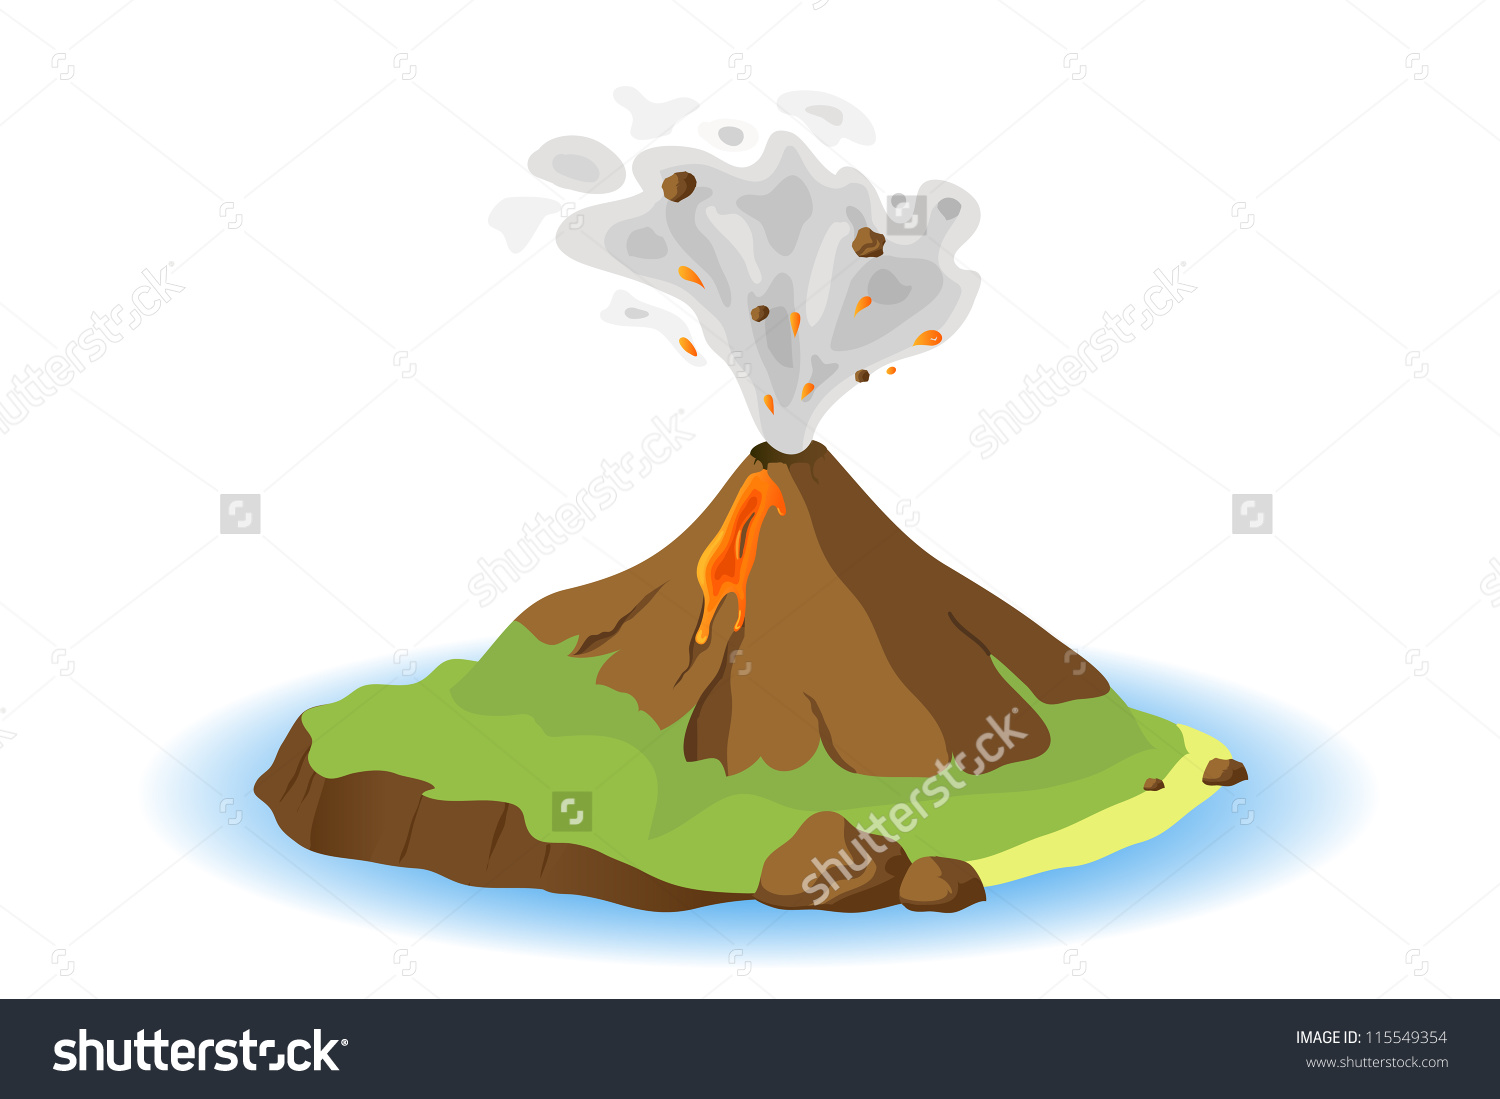 Island Volcano Eruption clipart #18, Download drawings